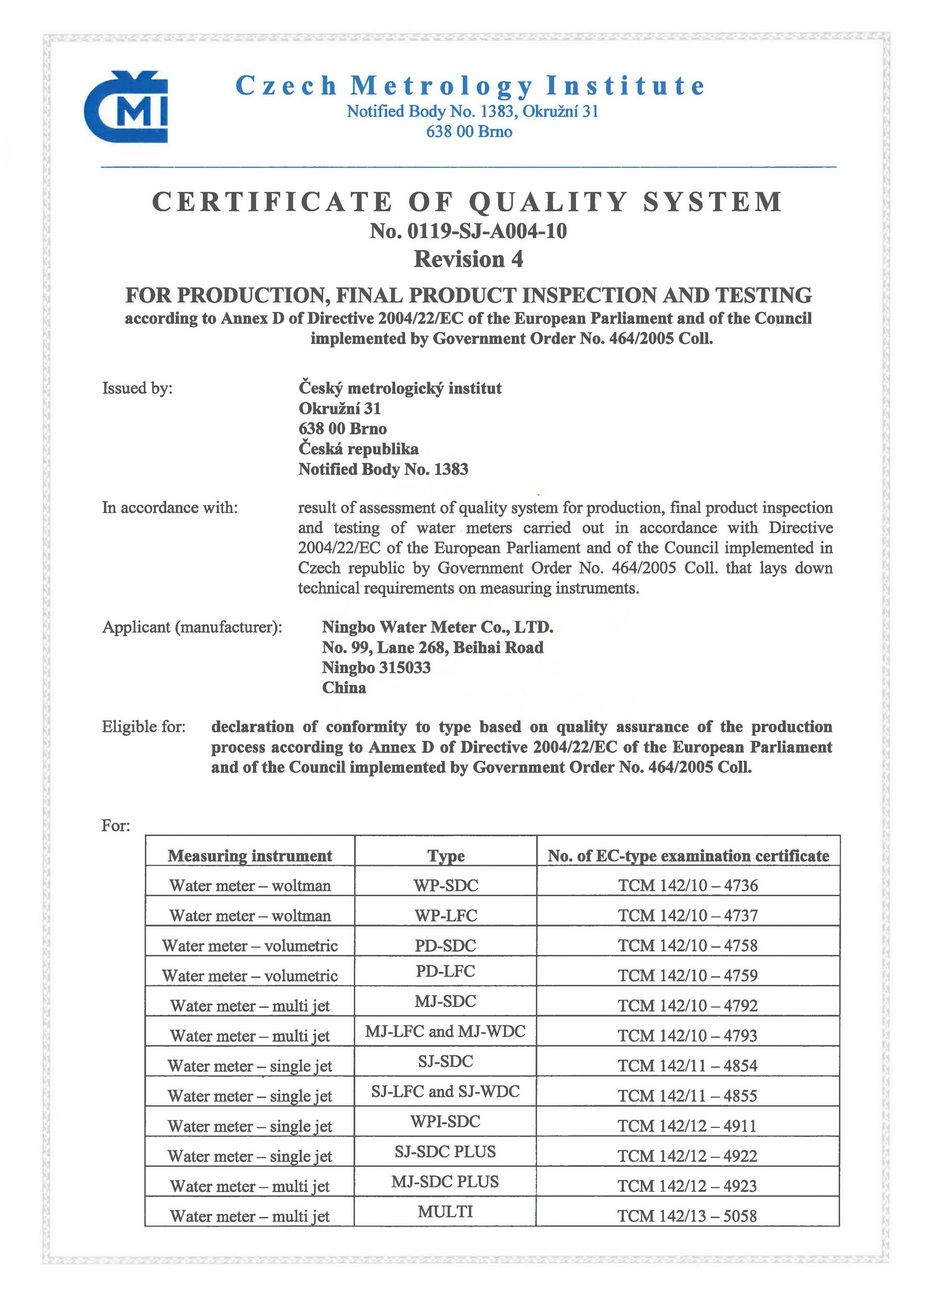 EC-TYPE APPROVAL CERTIFICATION